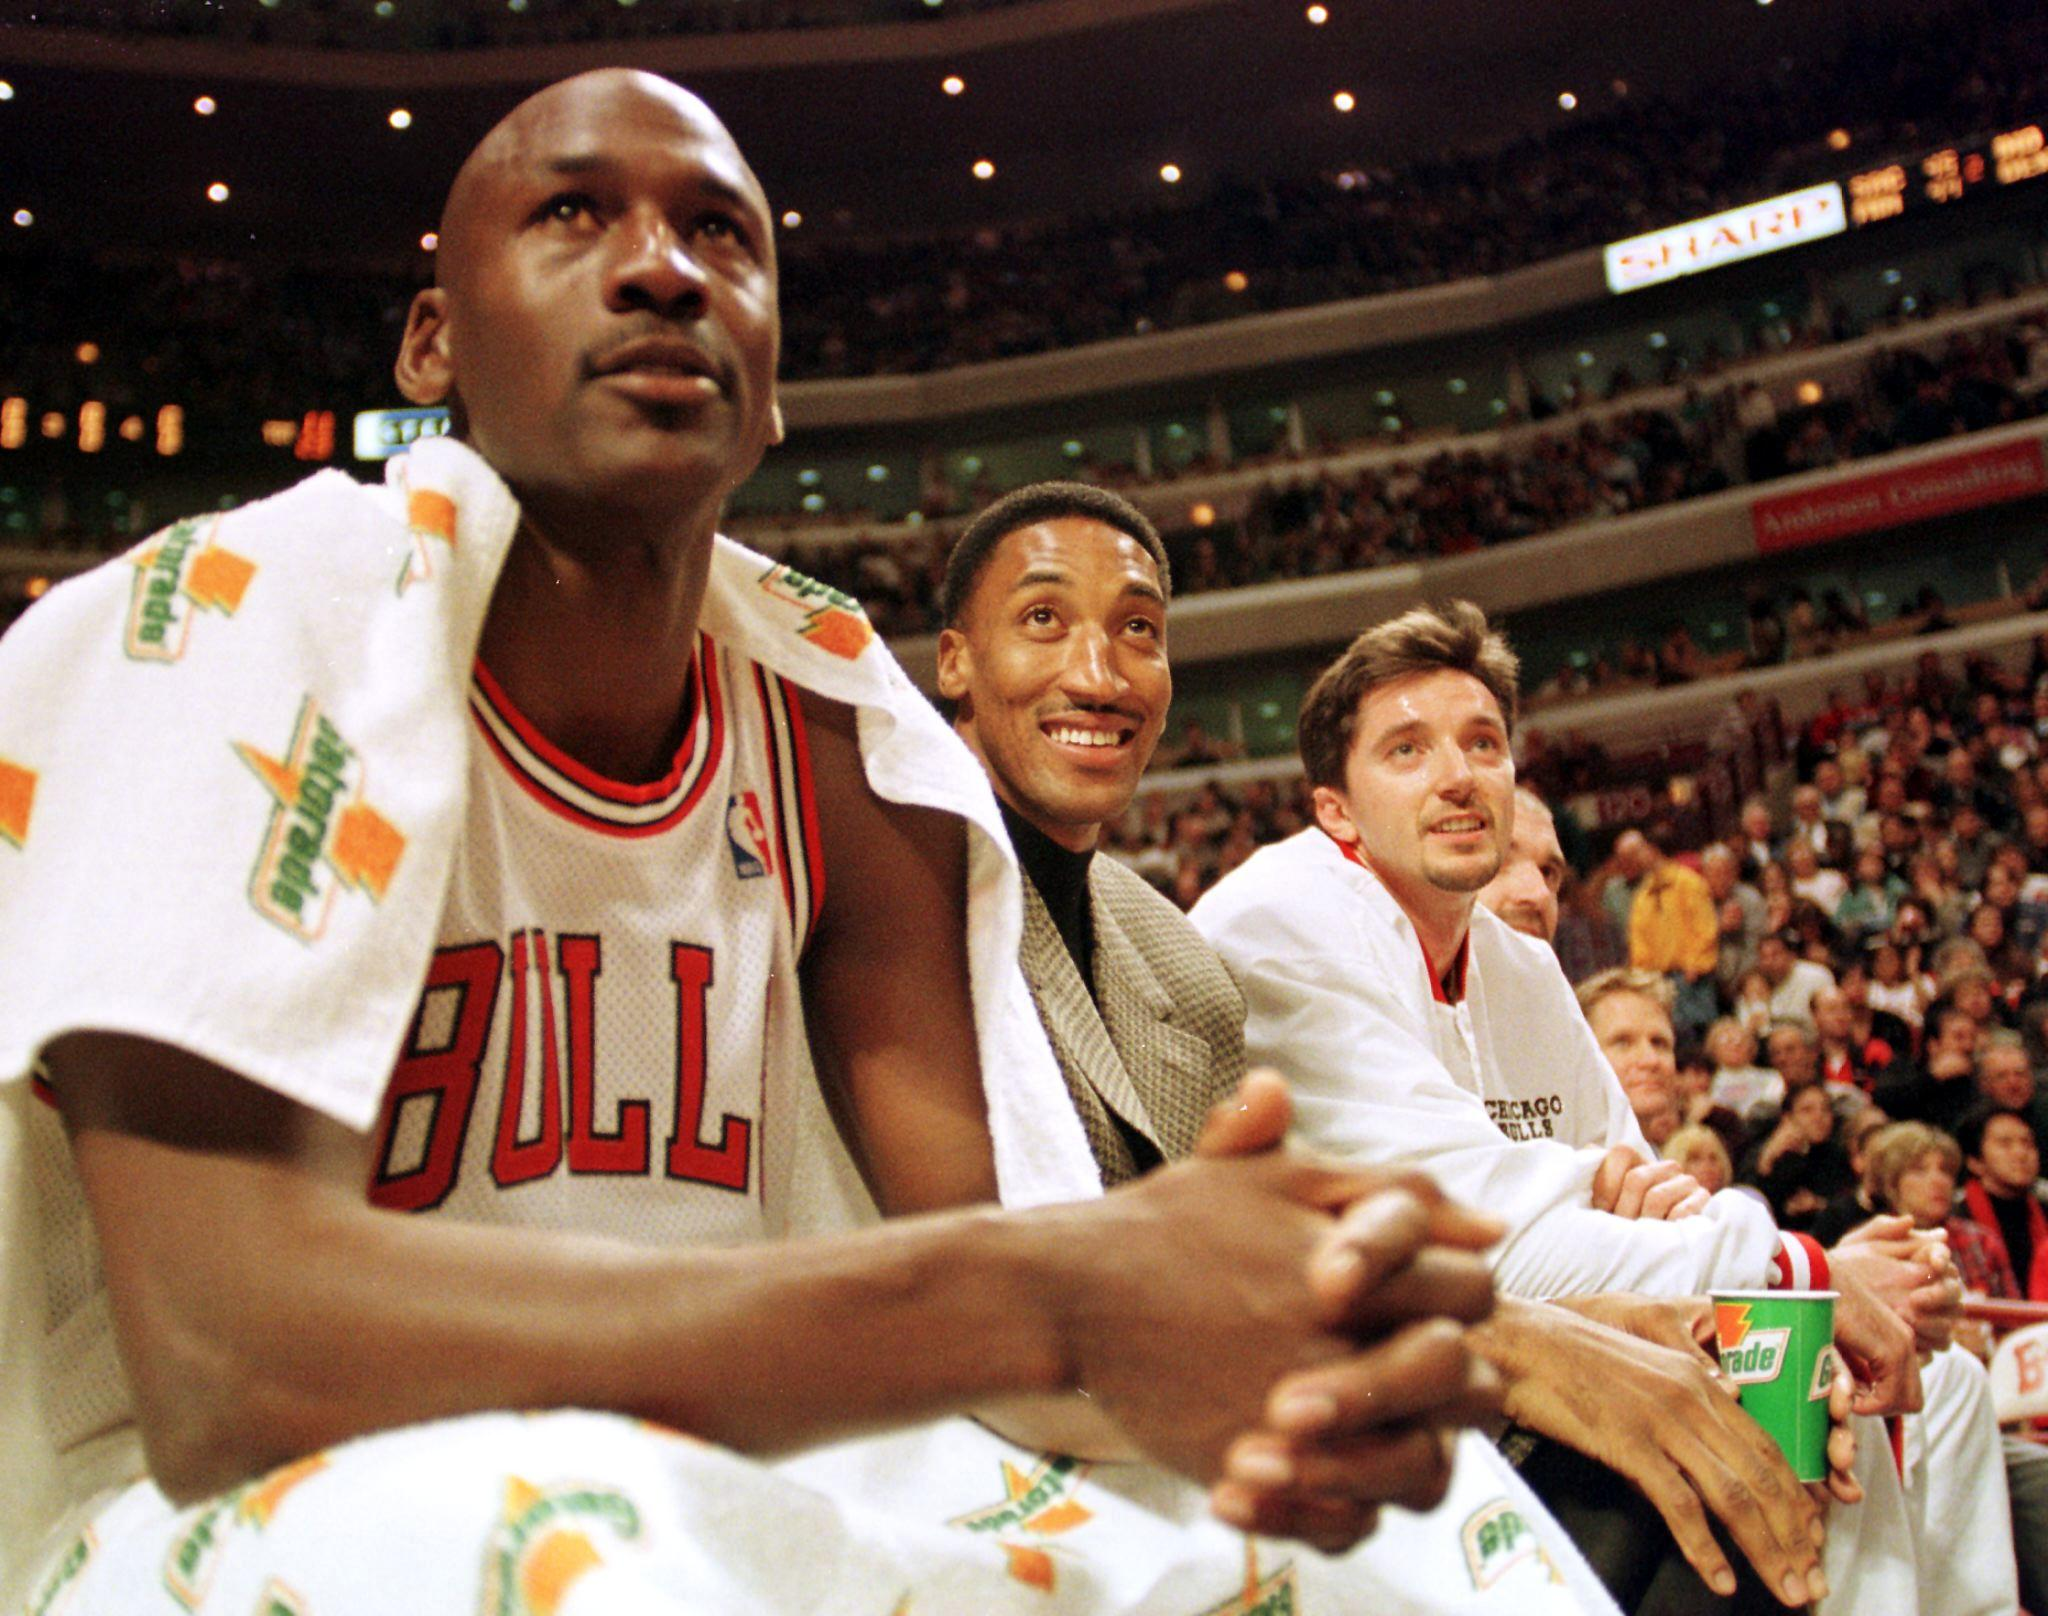 Chicago Bulls guard Michael Jordan (L), injured forward Scottie Pippen (C) and forward Toni Kukoc watch their teammates play against the Milwaukee Bucks during the second quarter 05 December at the United Center, in Chicago, IL.  Pippen has demanded that he be traded to another team following his recovery from foot surgery.  AFP PHOTO/VINCENT LAFORET (Photo by VINCENT LAFORET / AFP)